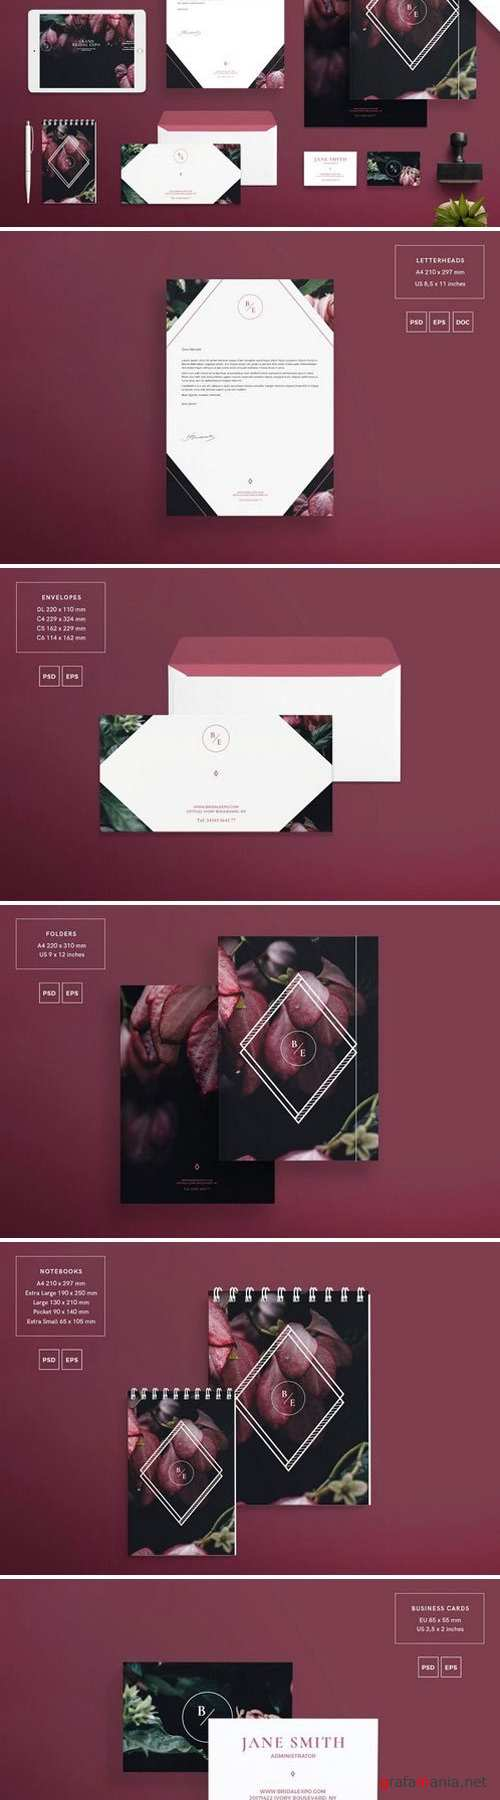 Branding Pack | Bridal Expo 1585339